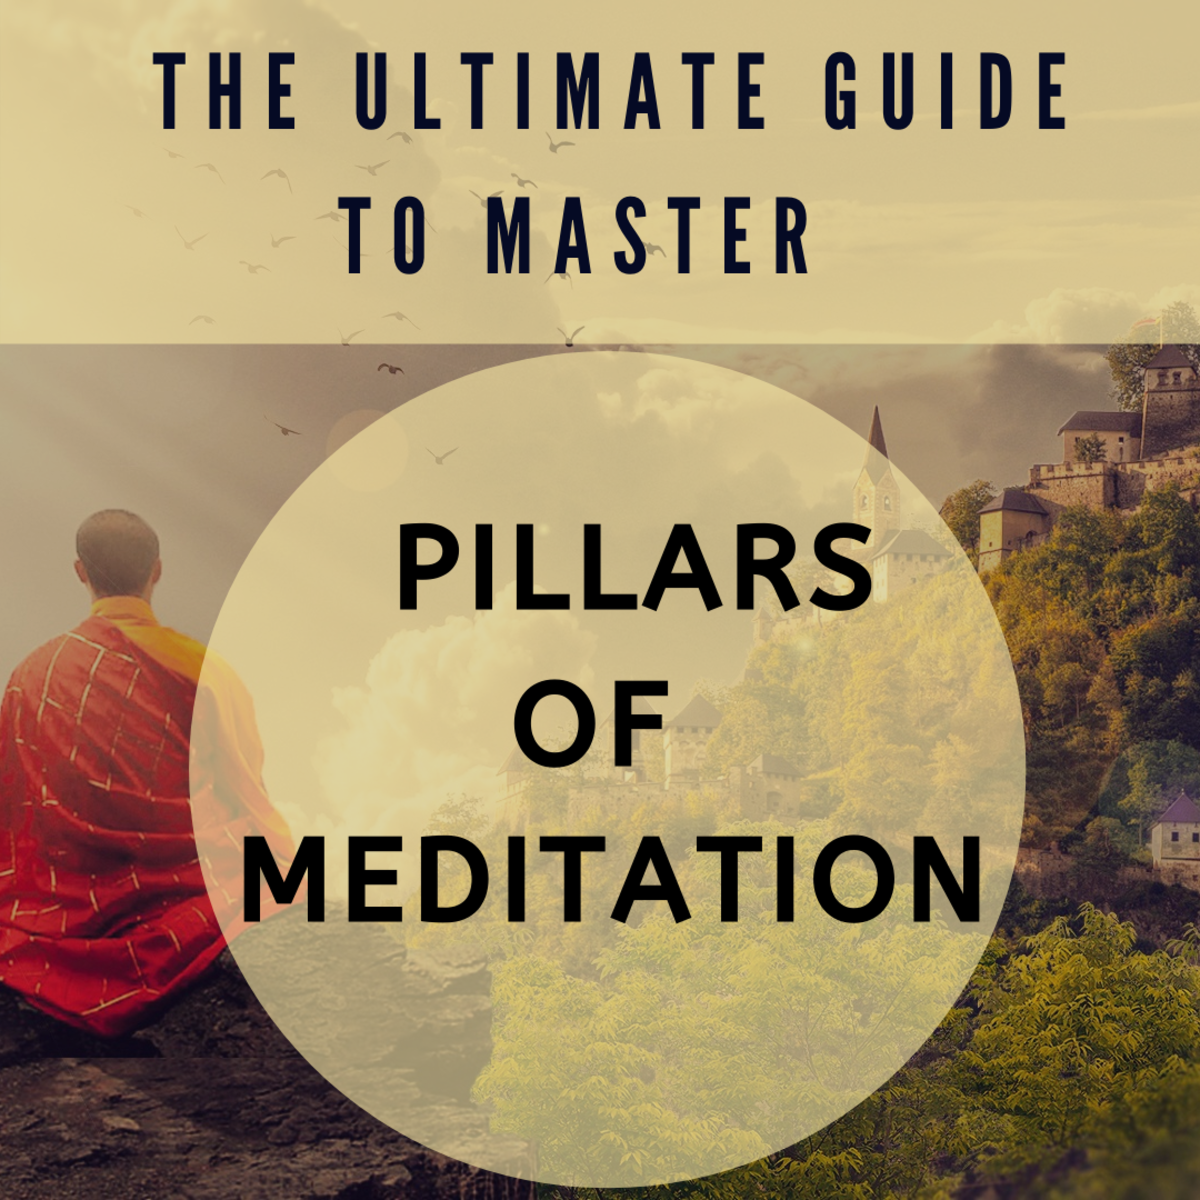 The Ultimate Guide to Master the Pillars of Meditation to Achieve Peace